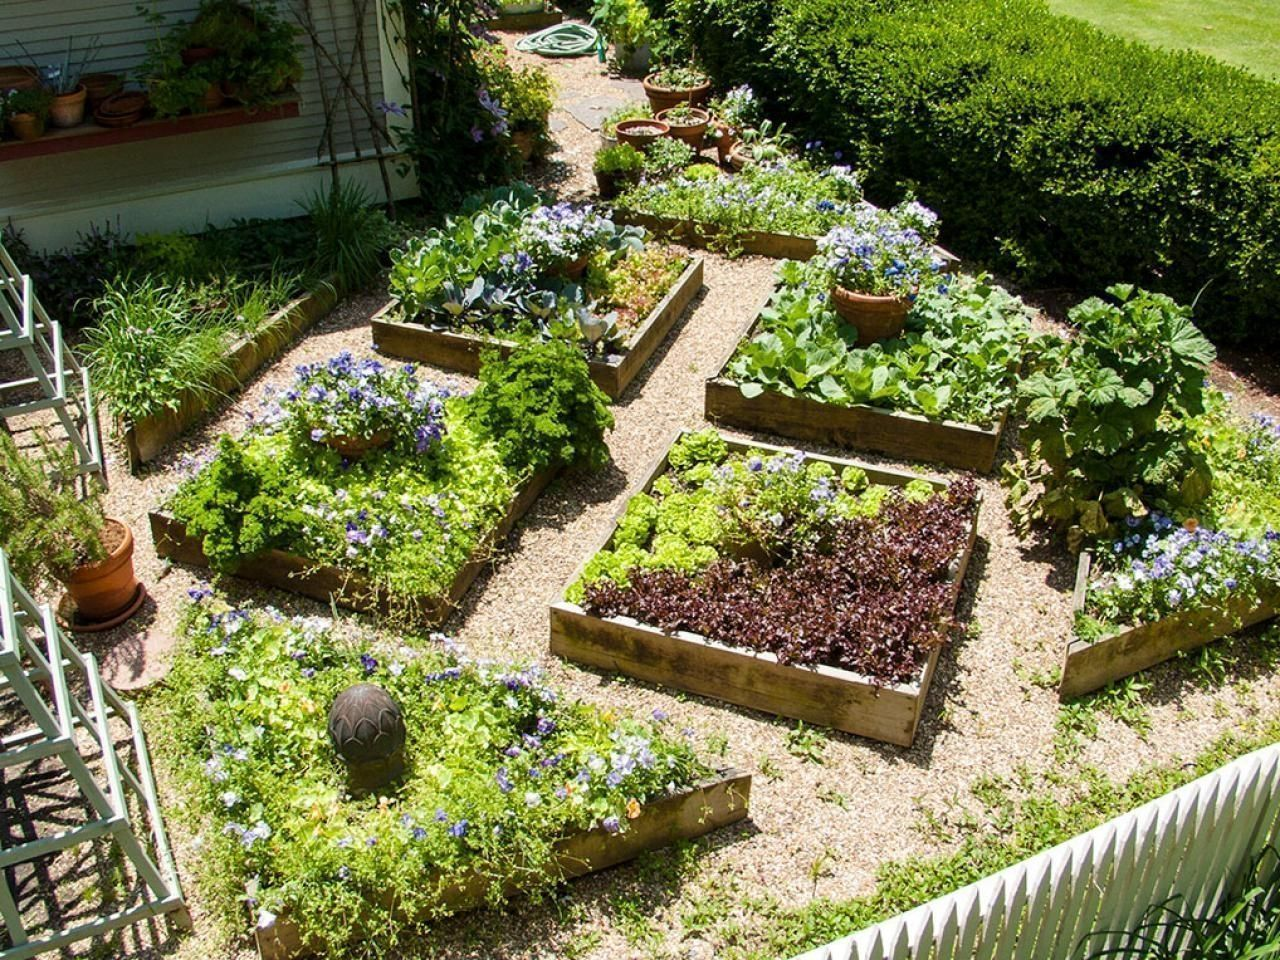 Pin by Nancy Hart on Raised Beds | Vegetable garden design ...